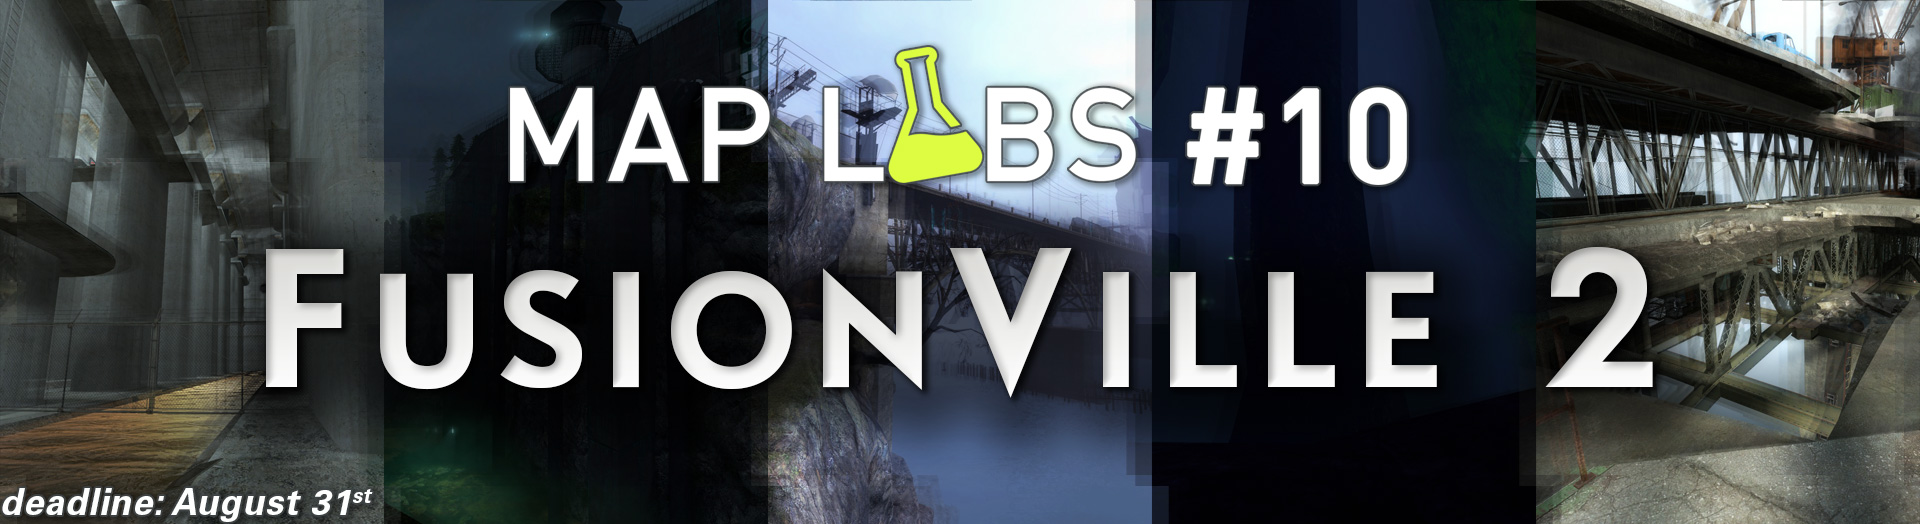 FusionVille 2 - Map Labs #10 Announcement